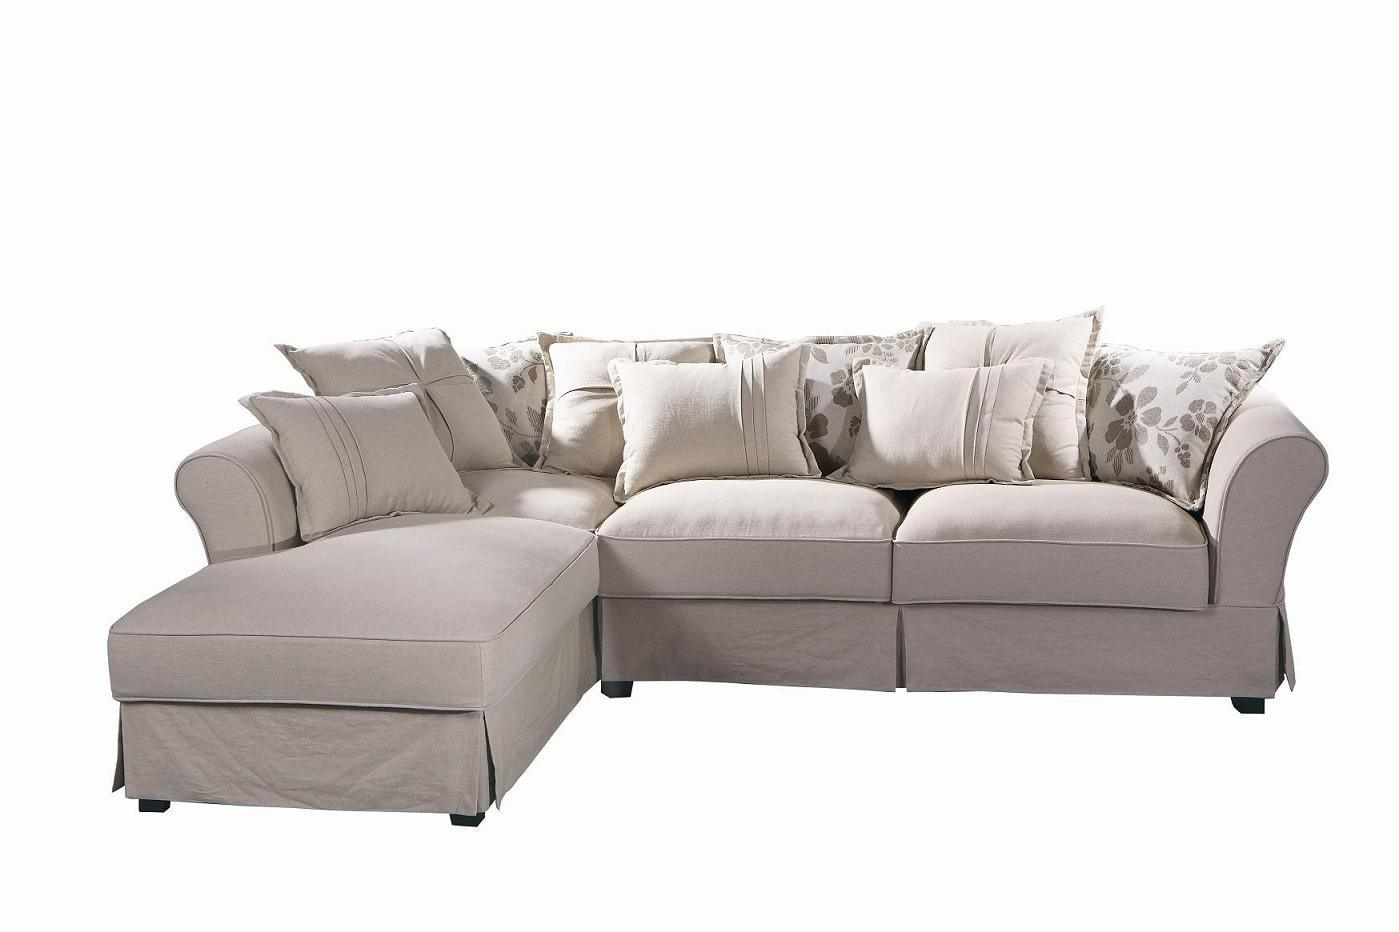 Discount sofa slipcovers cheap couch slipcovers at for Cheap wholesale furniture